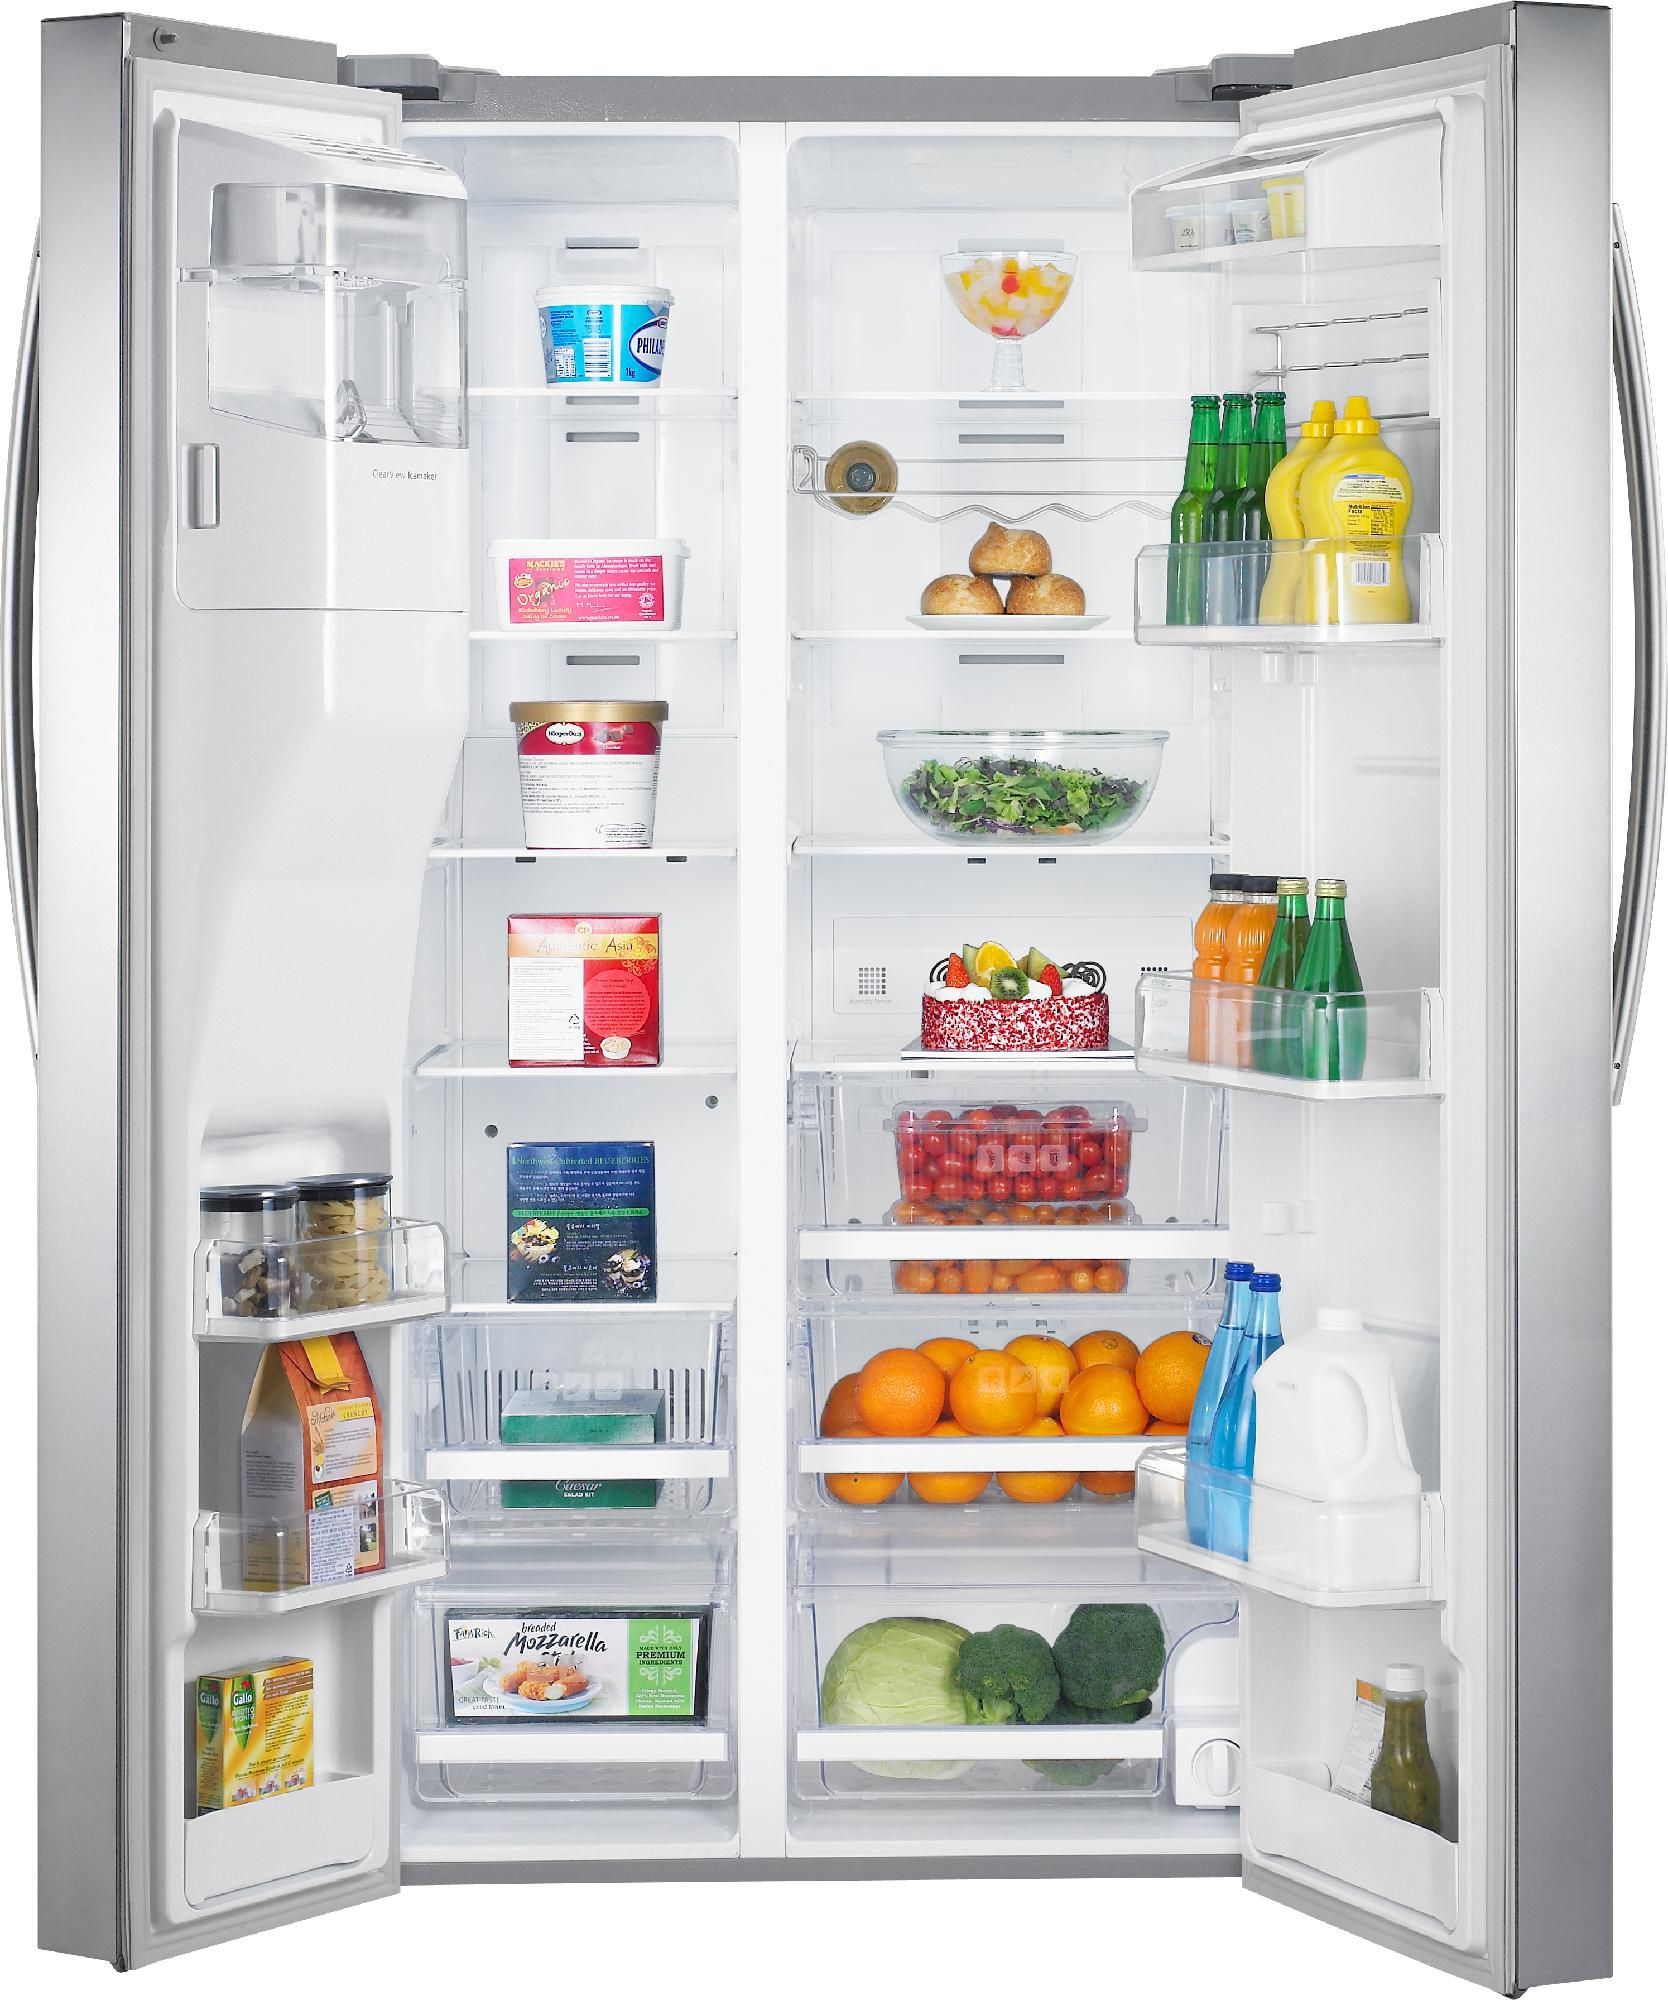 Samsung 30.0 cu. ft. Side-by-Side Refrigerator Stainless Steel